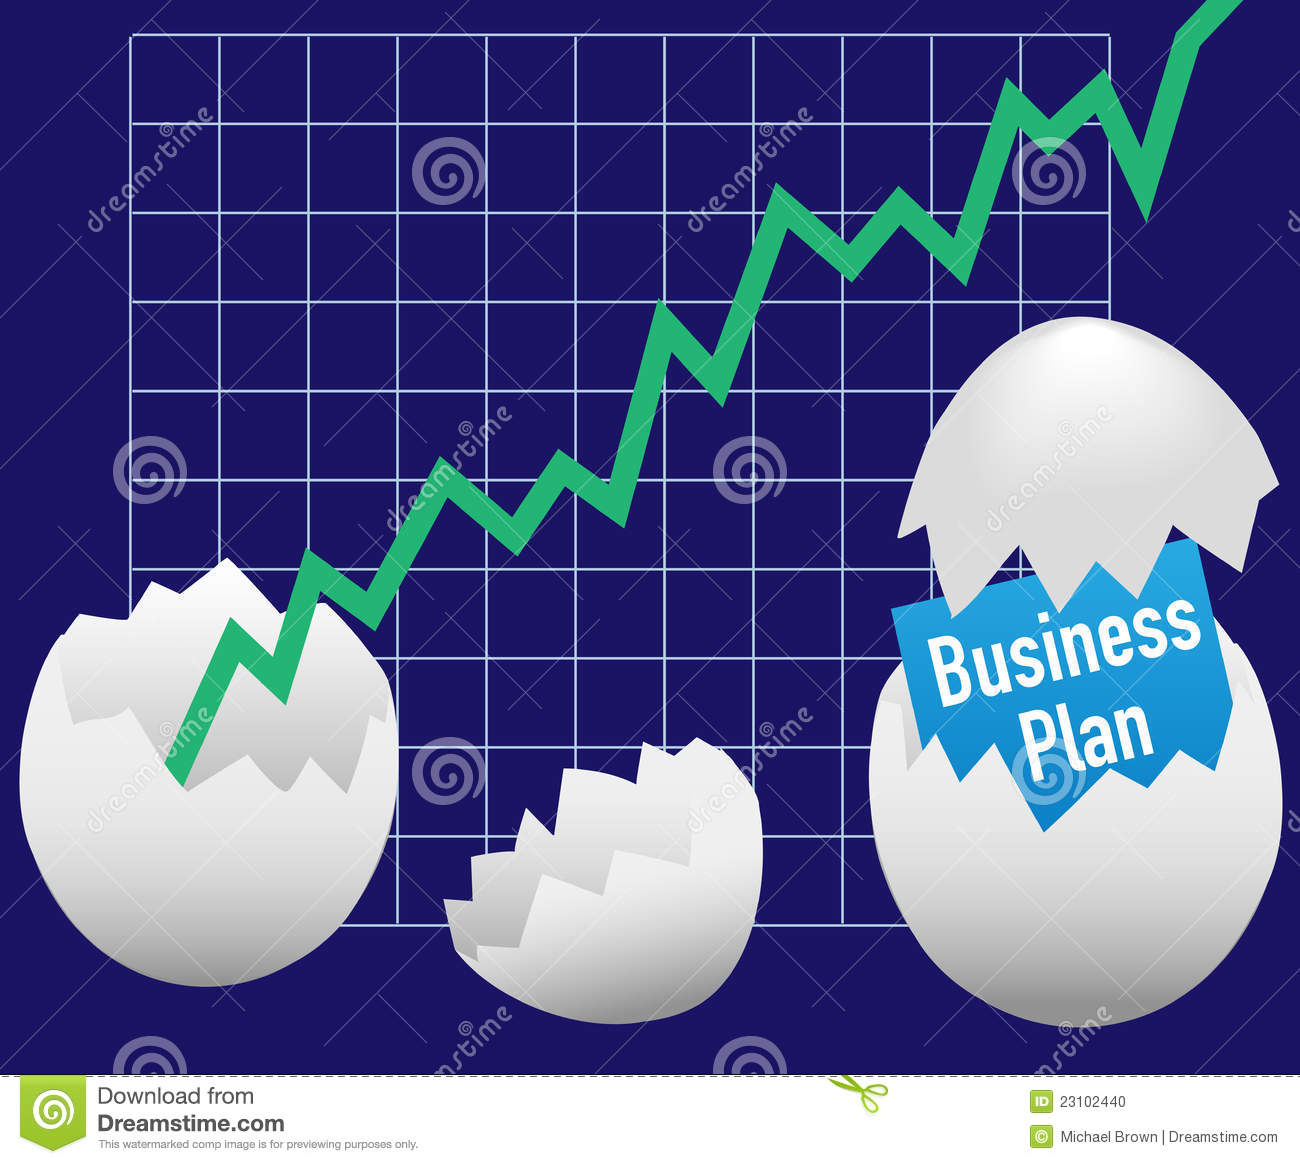 Egg business plan